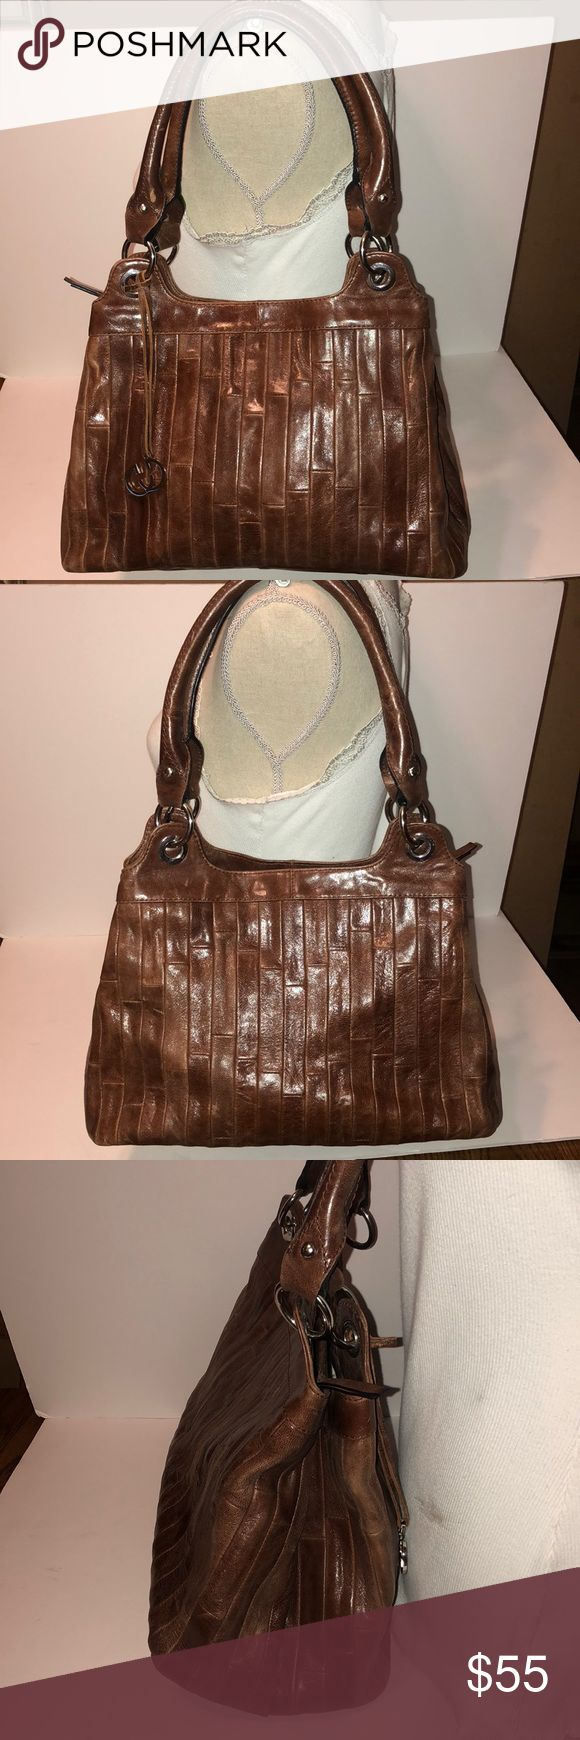 "Gerry Weber brown leather shoulder handbag This is a gently used Gerry Weber brown leather shoulder bag. Some light scuffs. It measures about 9"" x 13.5"" x6.5"". Lots of room. Two main compartments. One zips and one snaps. A zip pocket and two slip pockets inside. Thank you for looking! Gerry Weber Bags Shoulder Bags"